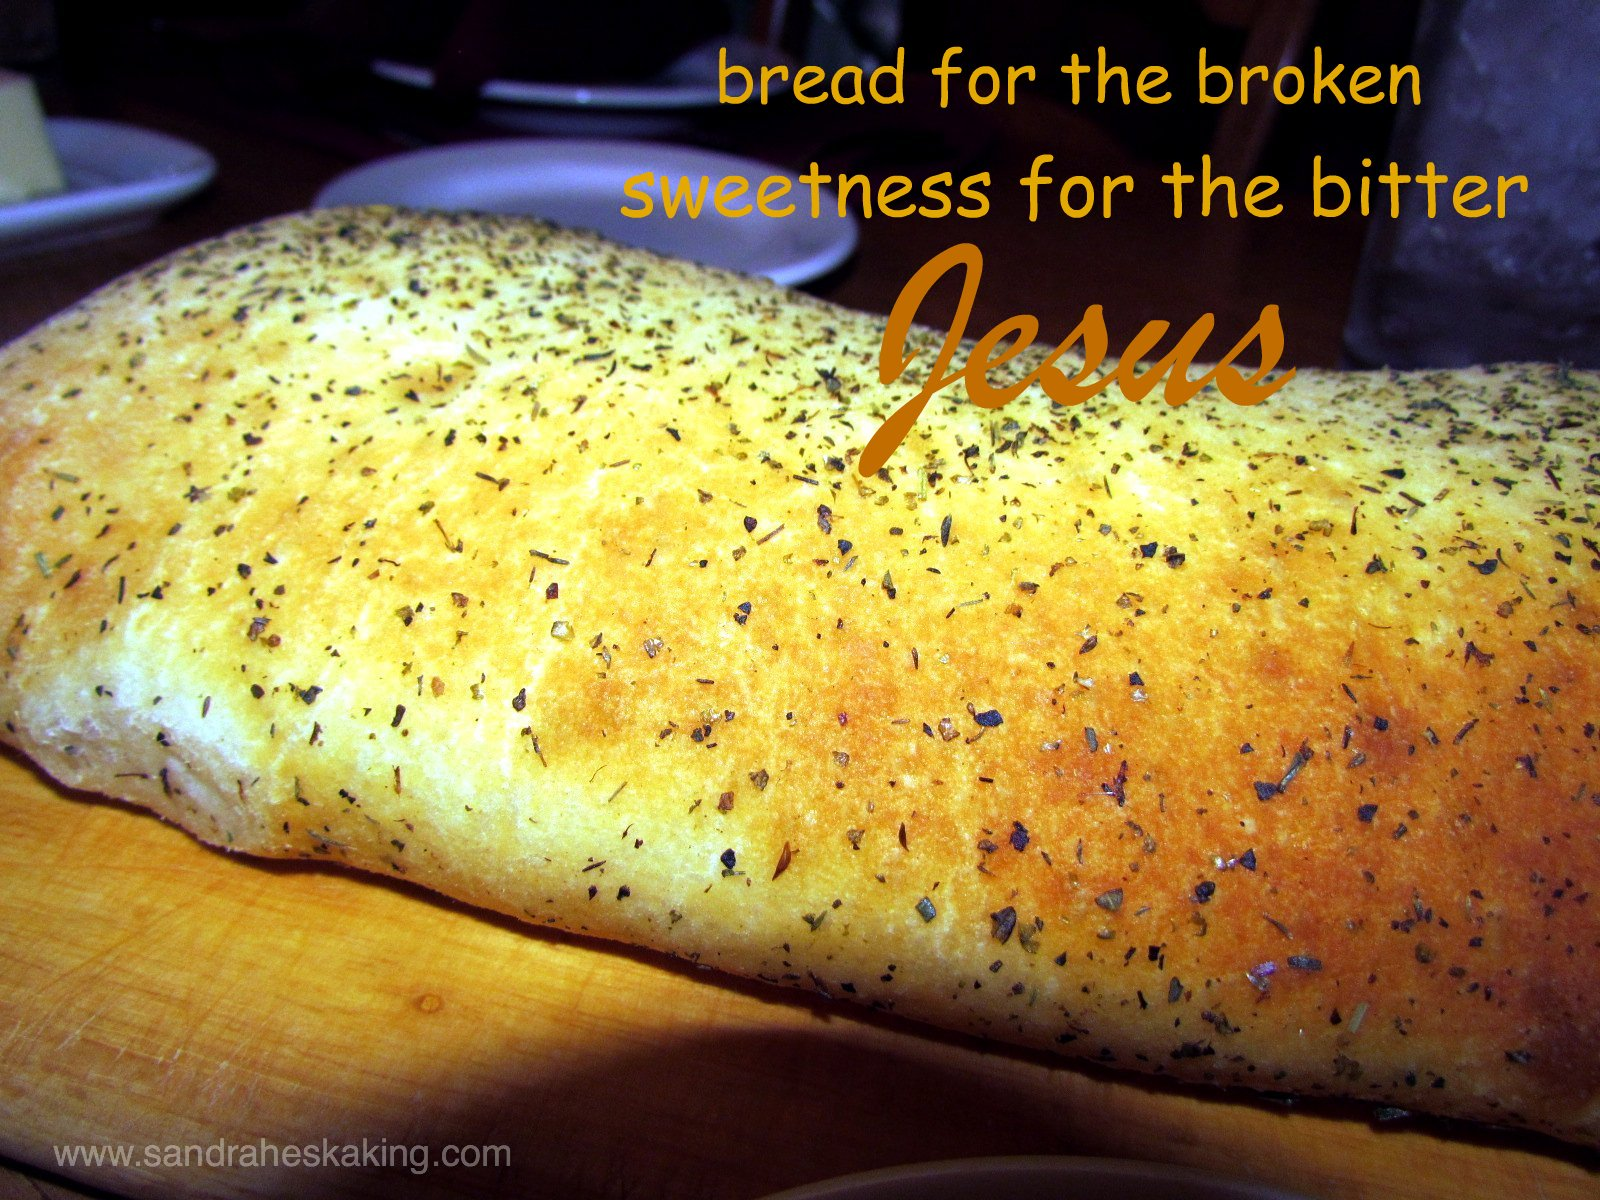 when you're breadless, broken, and bitter